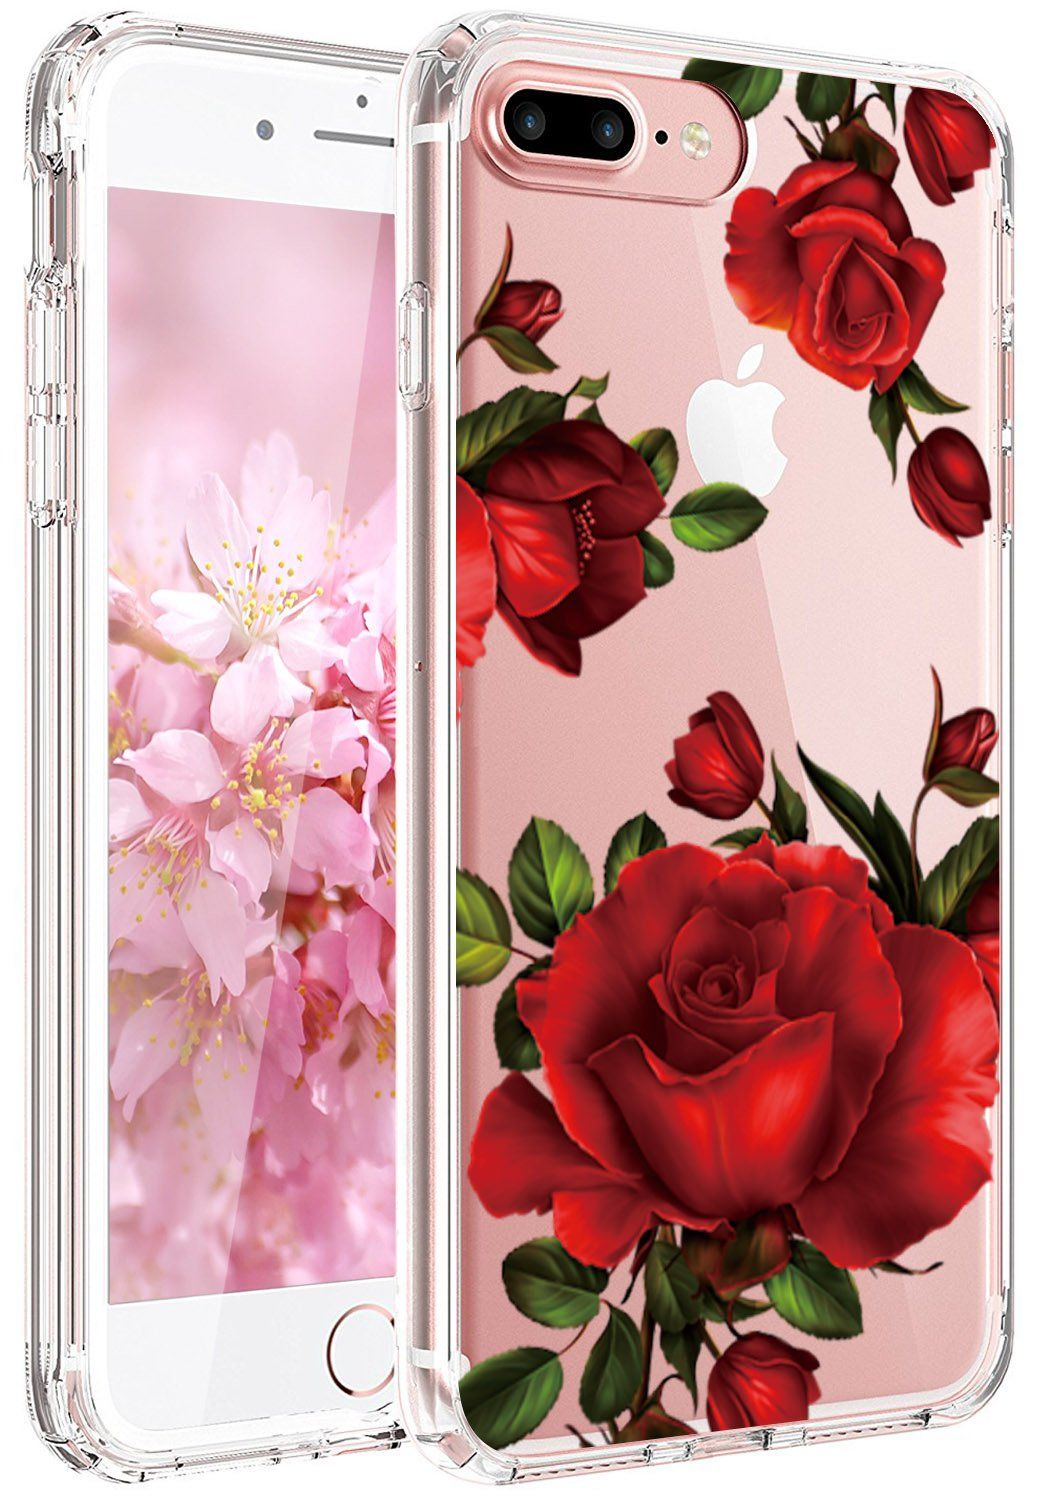 Iphone 7 Plus Case Iphone 8 Plus Case Jaholan Girls Floral Clear Tpu Soft Slim Flexible Silicone Cover Phone Floral Phone Case Floral Iphone Case Floral Iphone